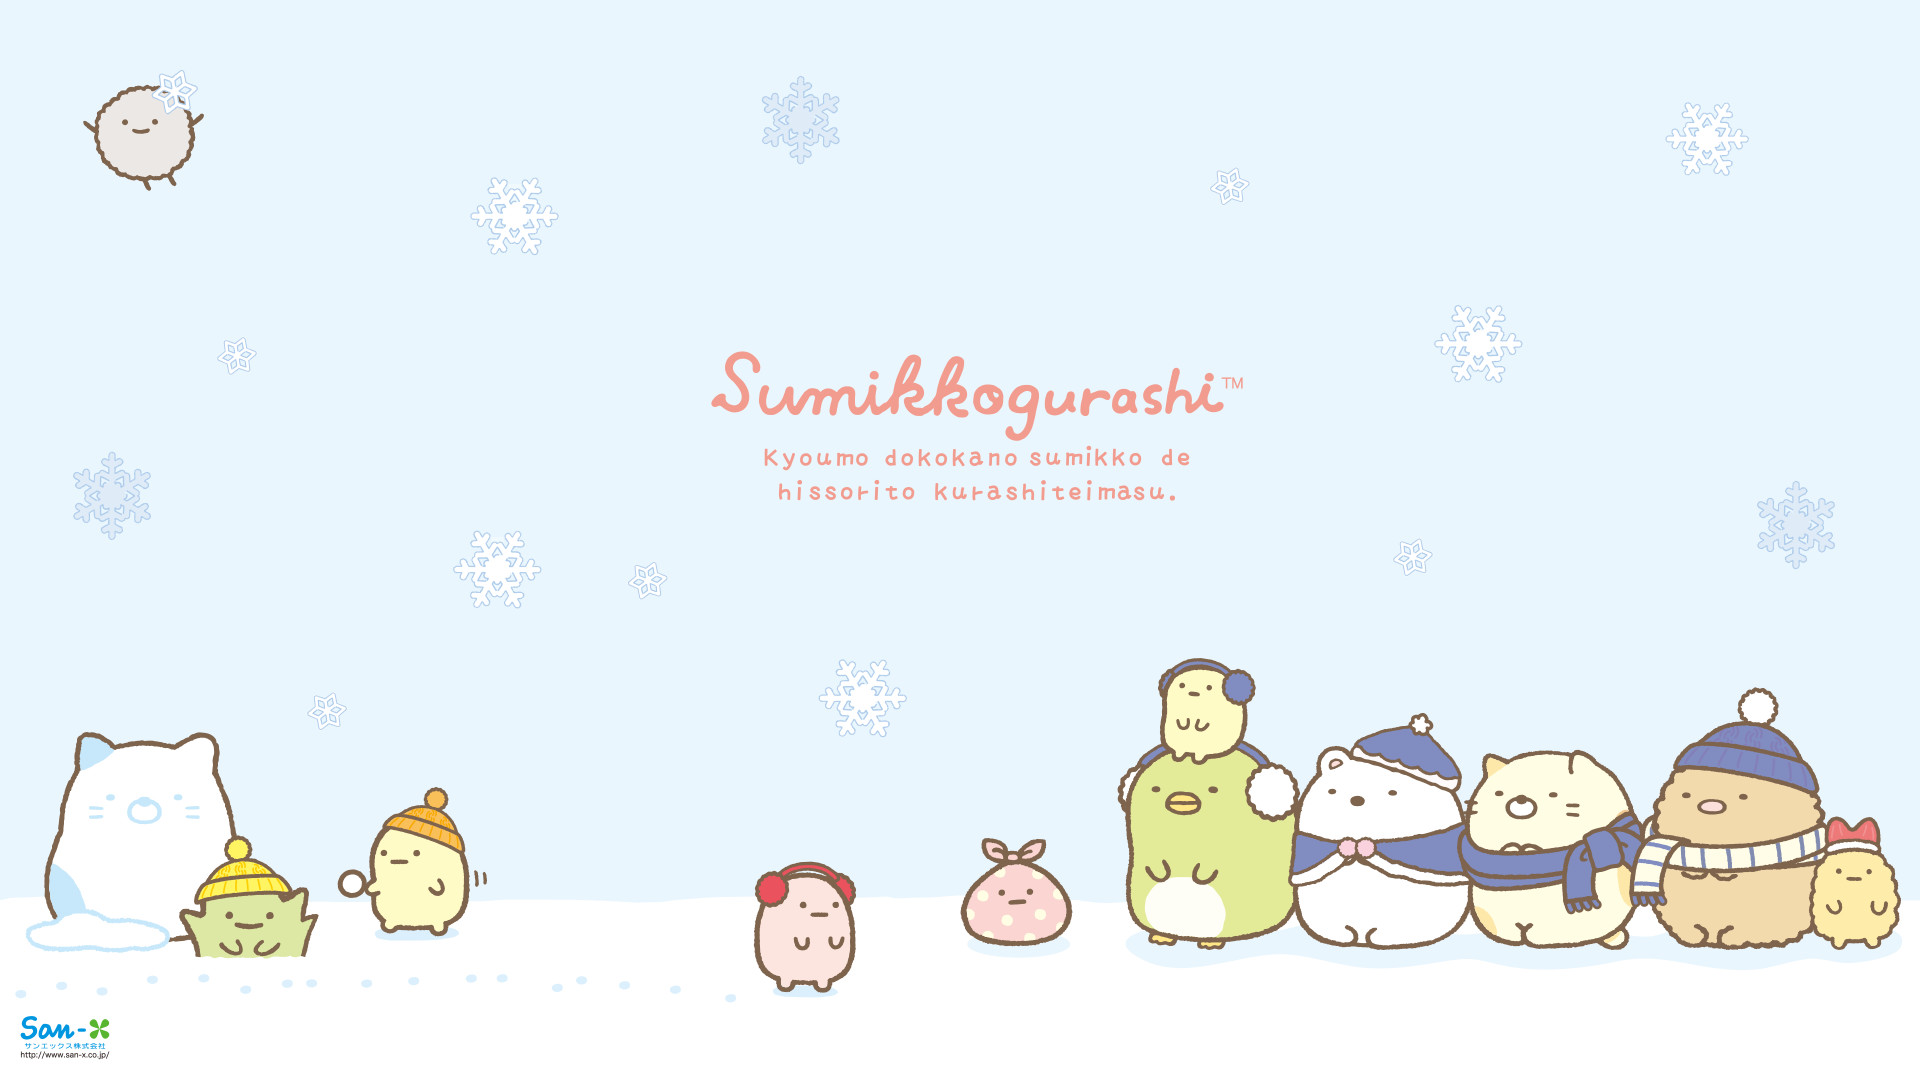 1920x1080 New Sumikkogurashi Christmas Wallpaper - Living quietly in the corner! Such  a cute bunch in the snow! Sumikkogurashi is so cute and random.